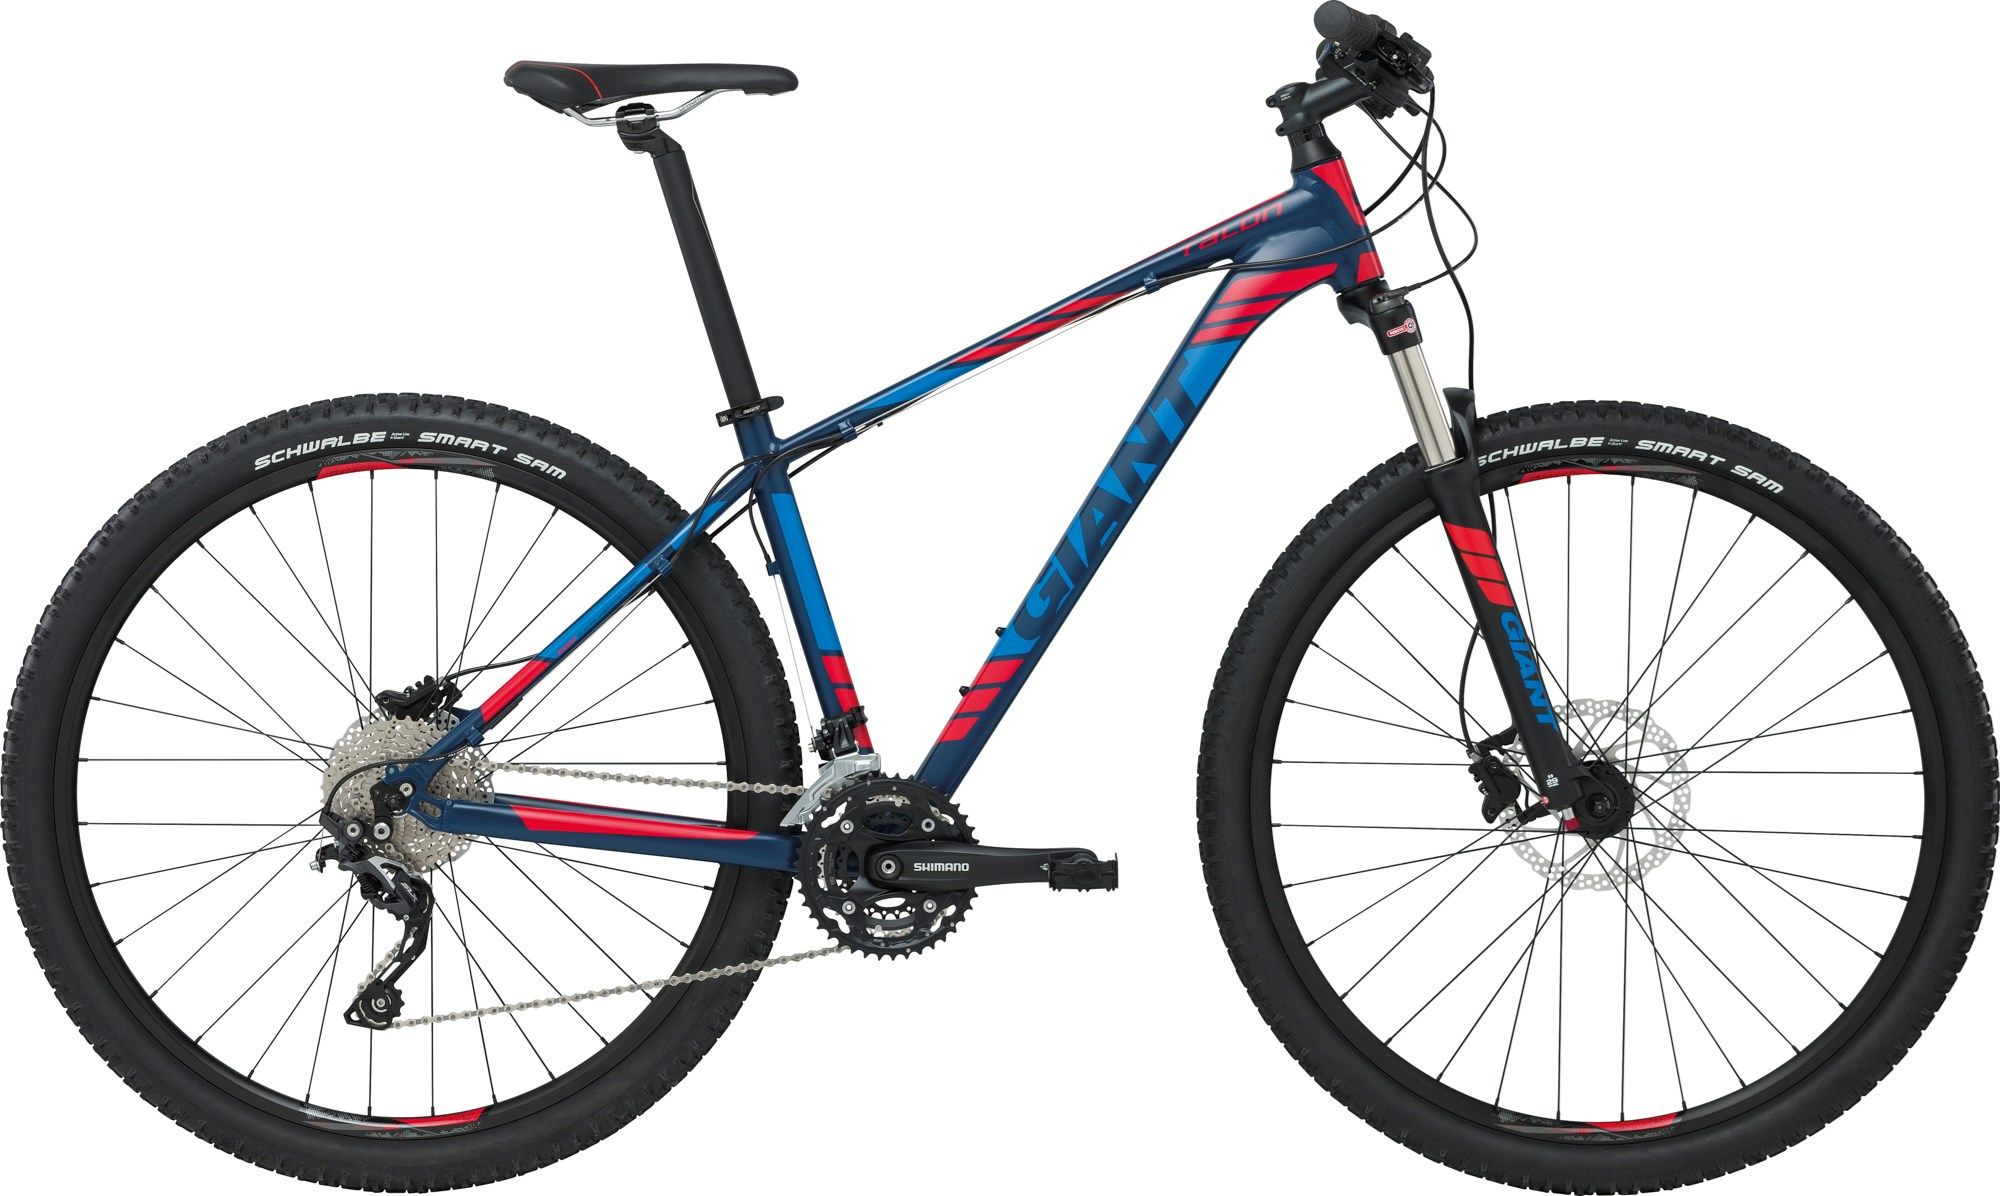 Велосипед Giant Talon 29er 2 LTD 2017 велосипед giant talon 29er 2 blk 2014